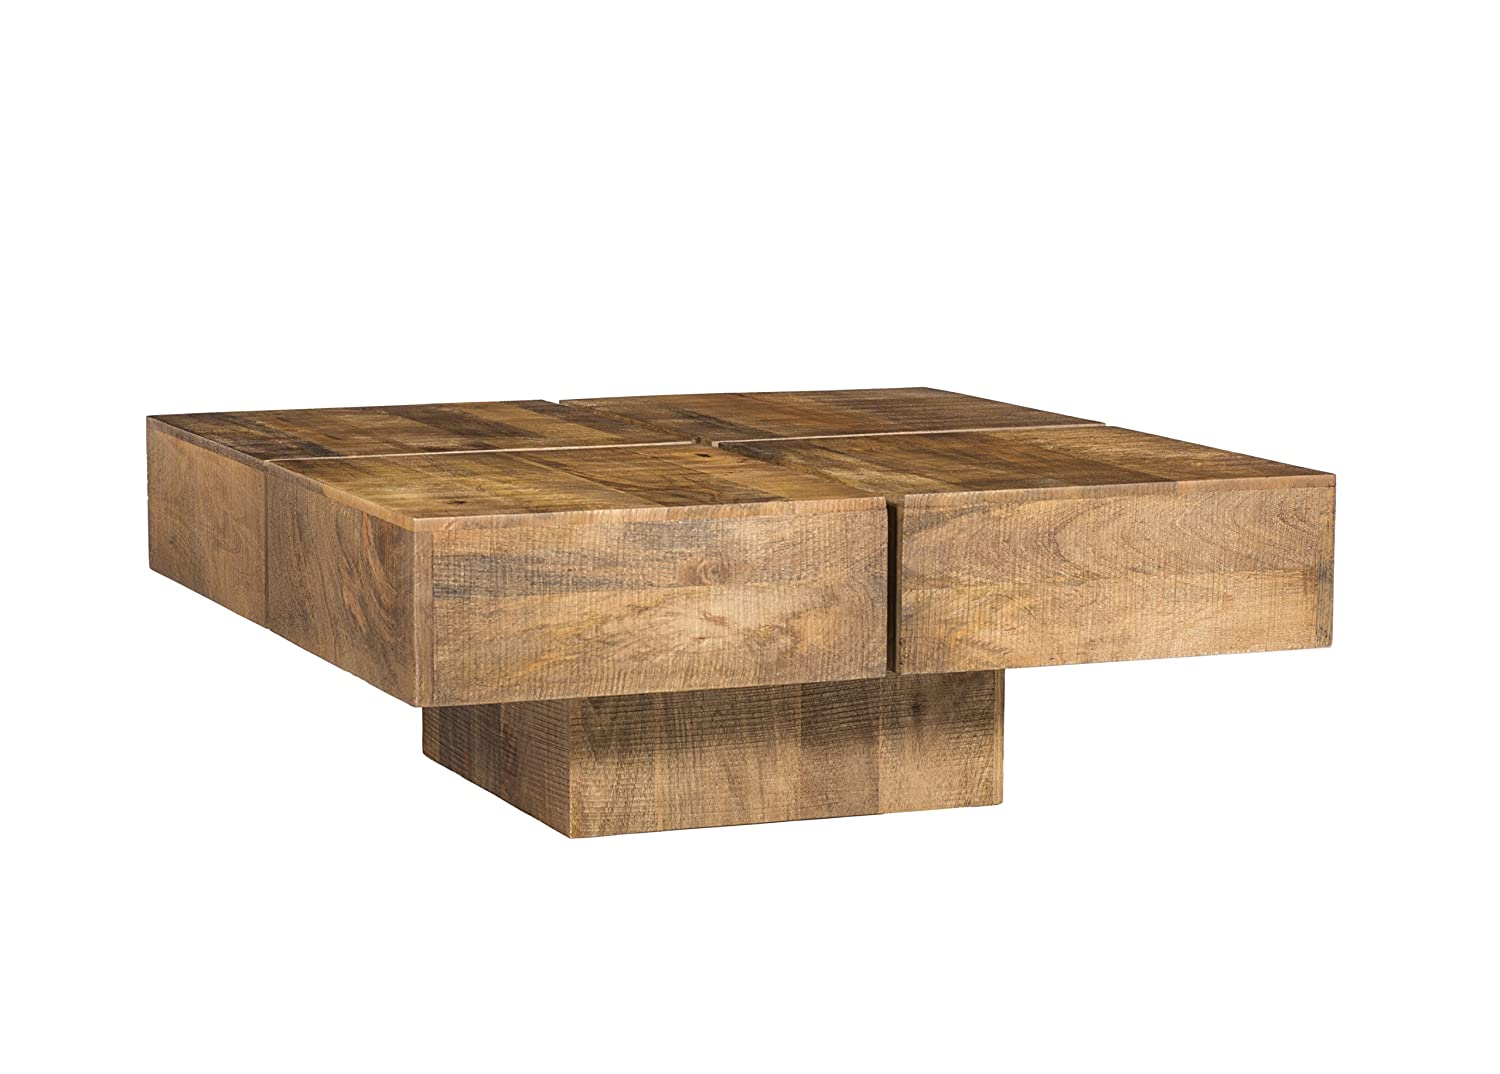 Woodkings Couchtisch Amberley Amberley Amberley 80x80cm Holz Mango Natural Rustic, Echtholz modern, Design, Massivholz exklusiv, Lounge Coffee Table günstig 6f6616